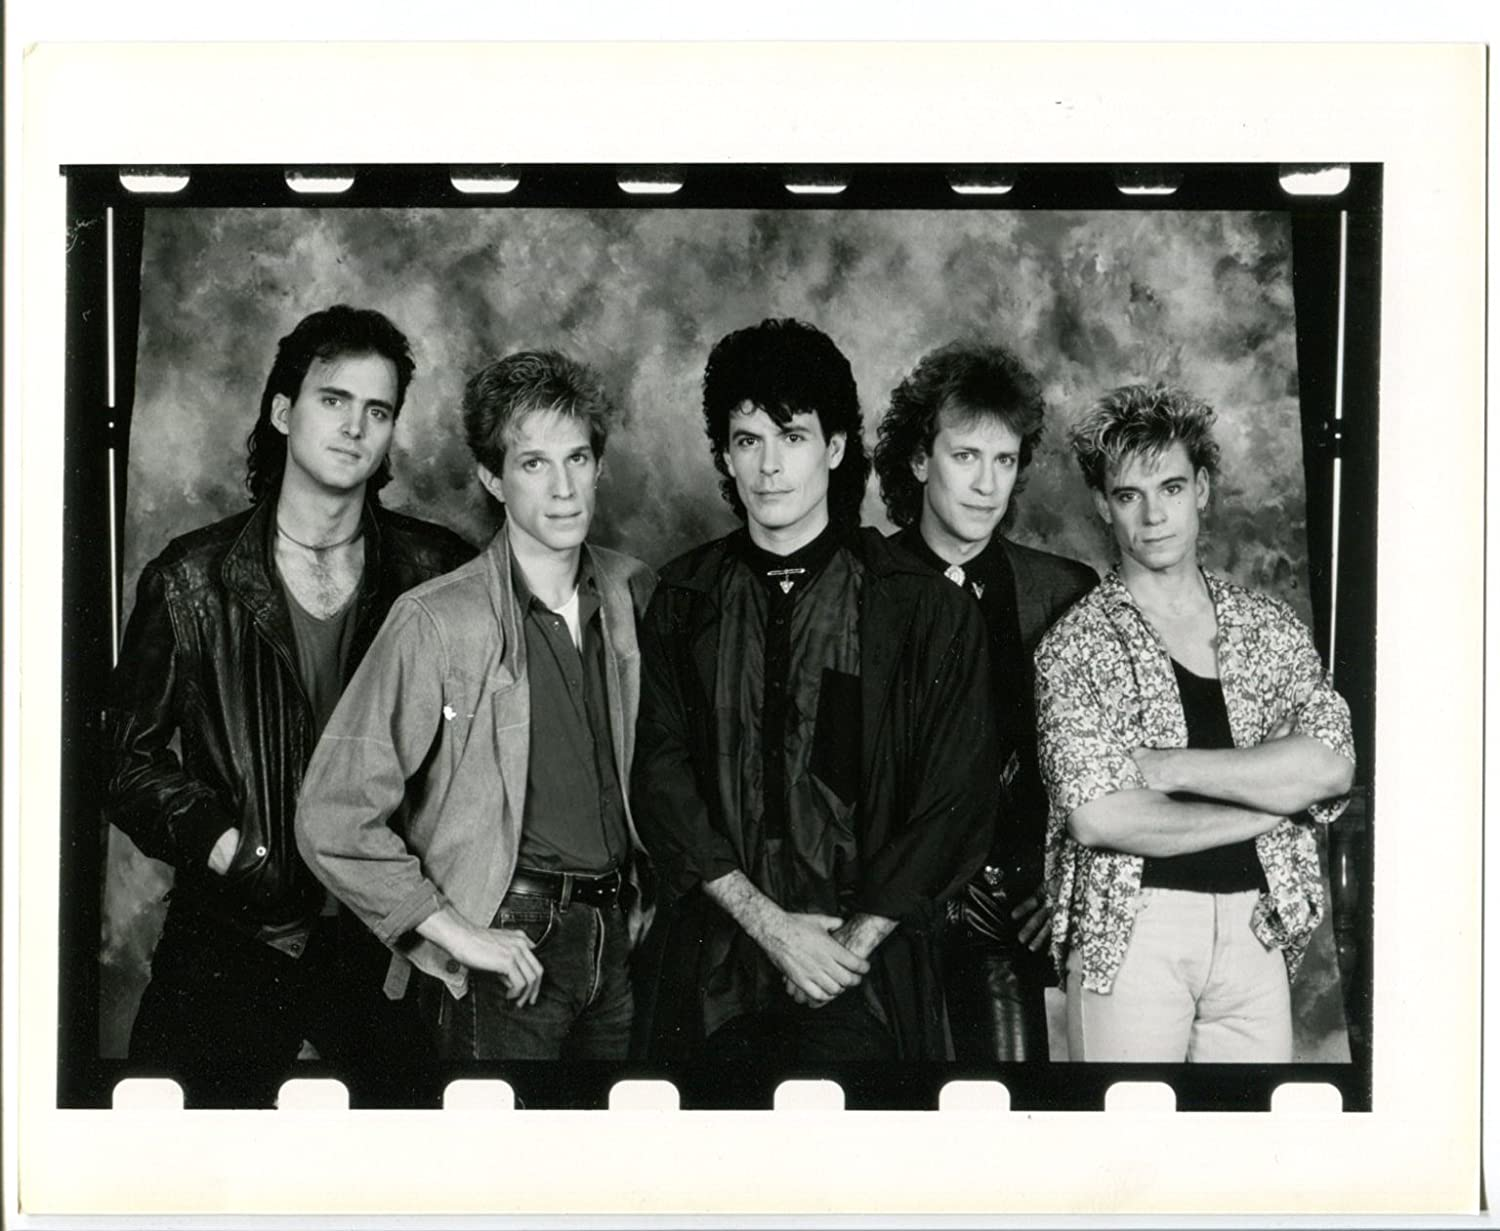 Movie photo 80s rock band 8x10 black and white promo still reproduction fn at amazons entertainment collectibles store